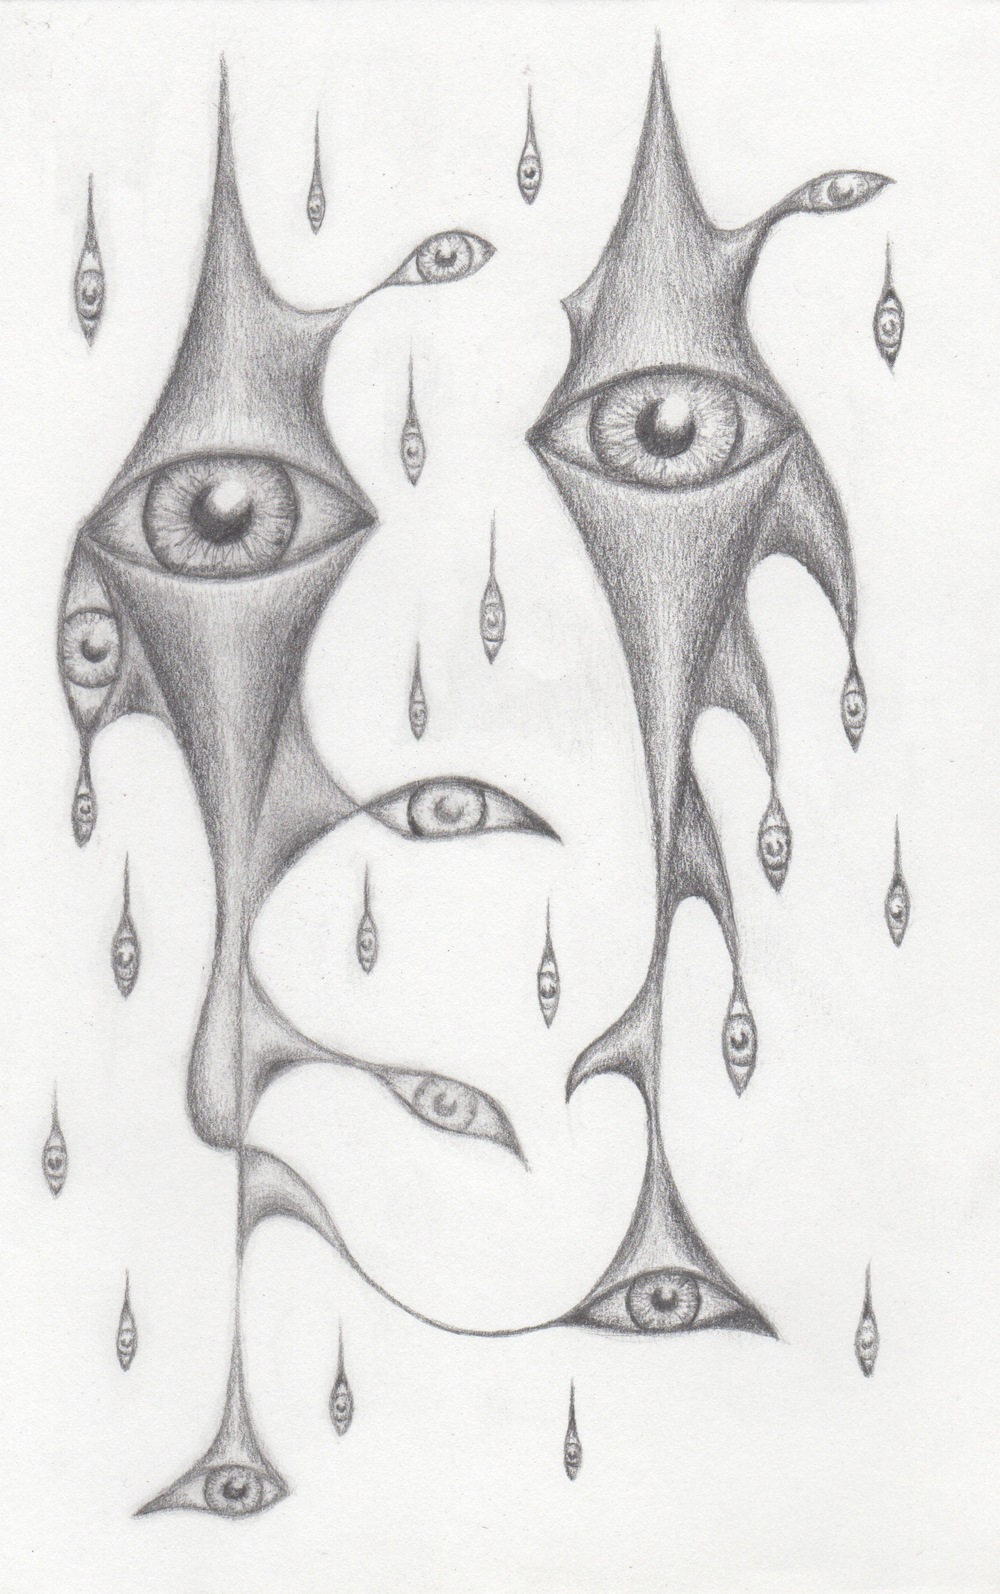 "'Eye Rain' Pencil on Paper 5.5"" x 8"""